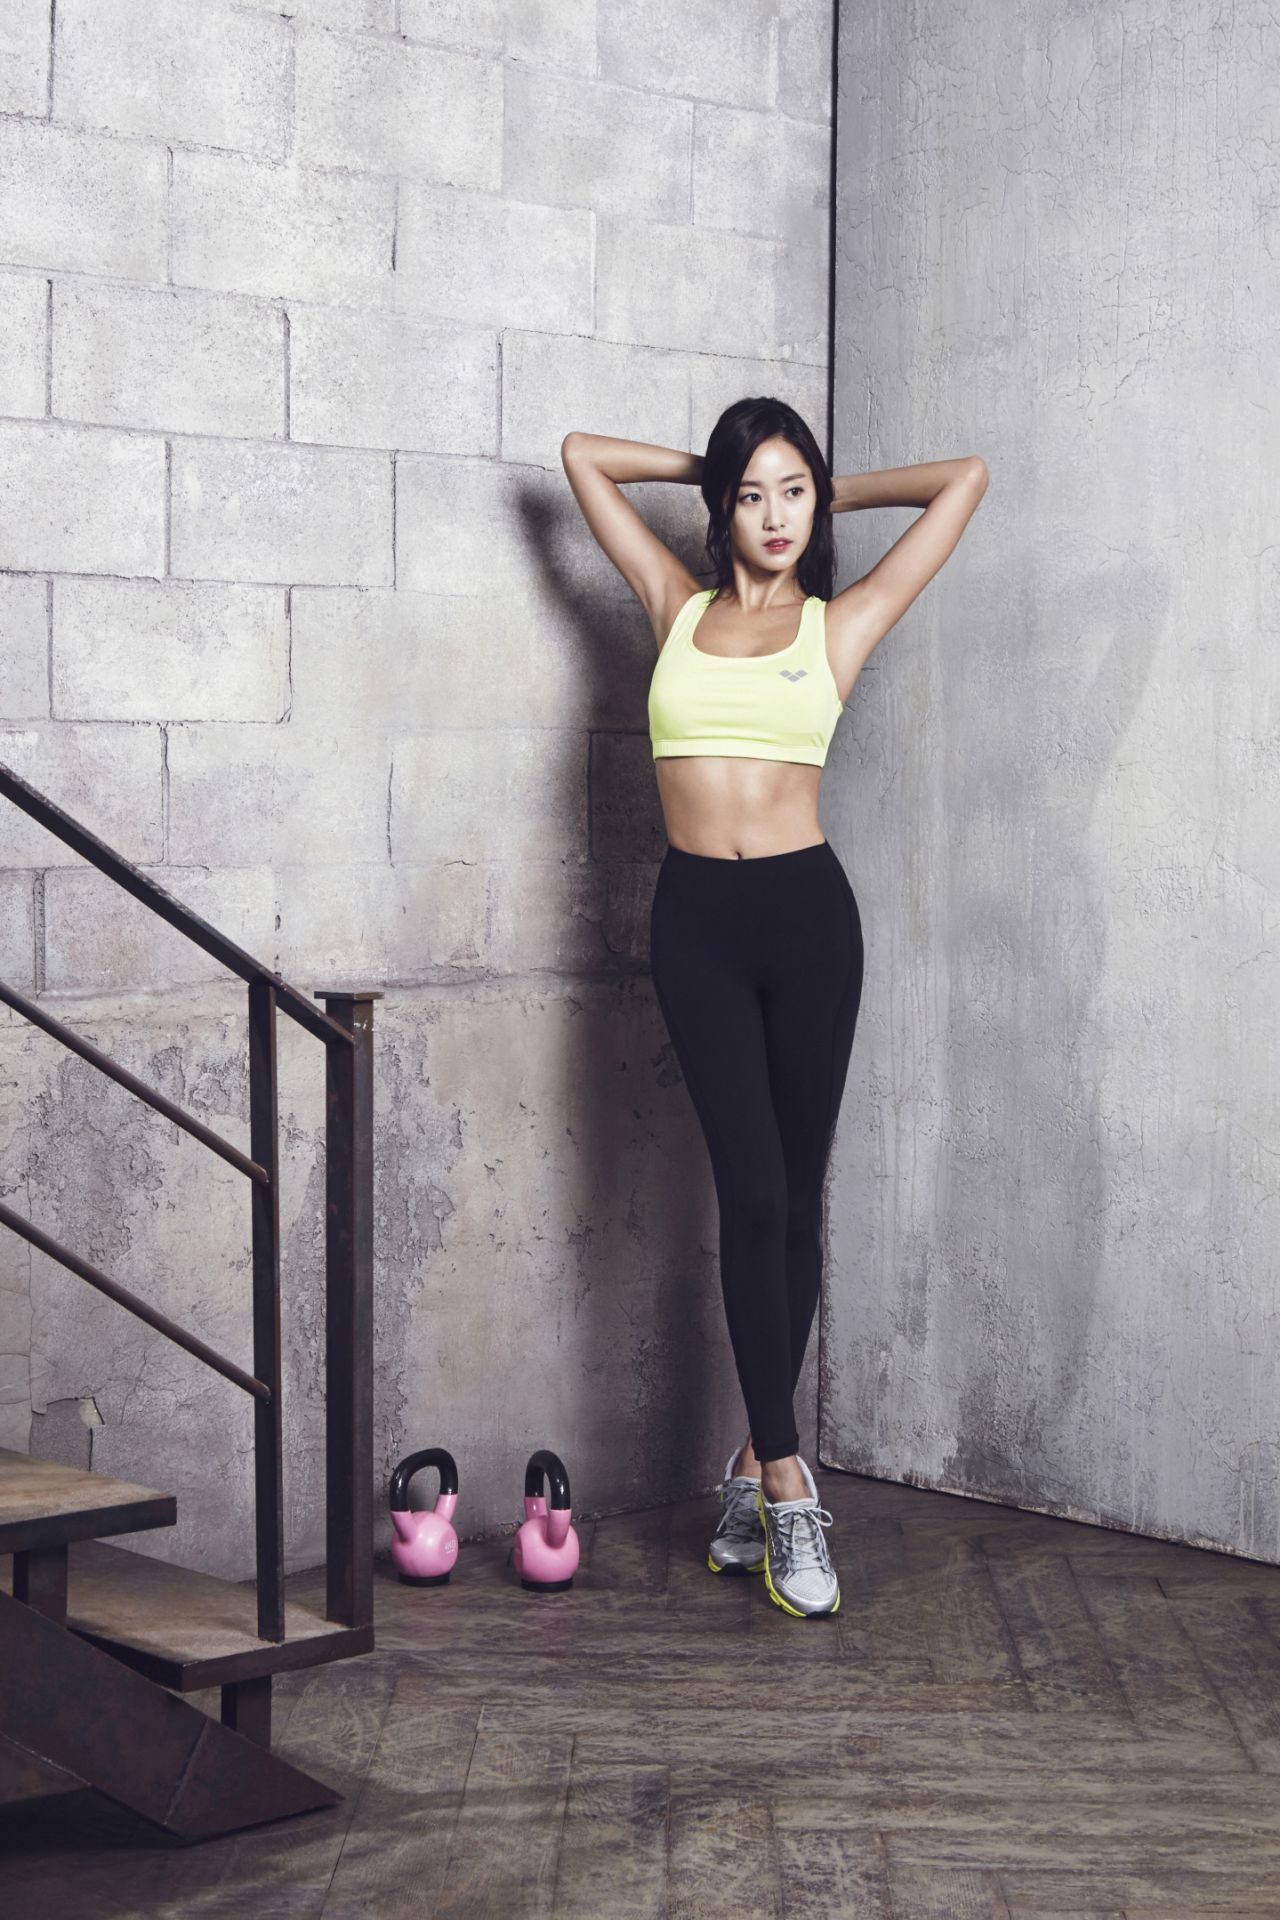 Jeon Hye Bin Photoshoot Arena Fall Winter 2013 Sports